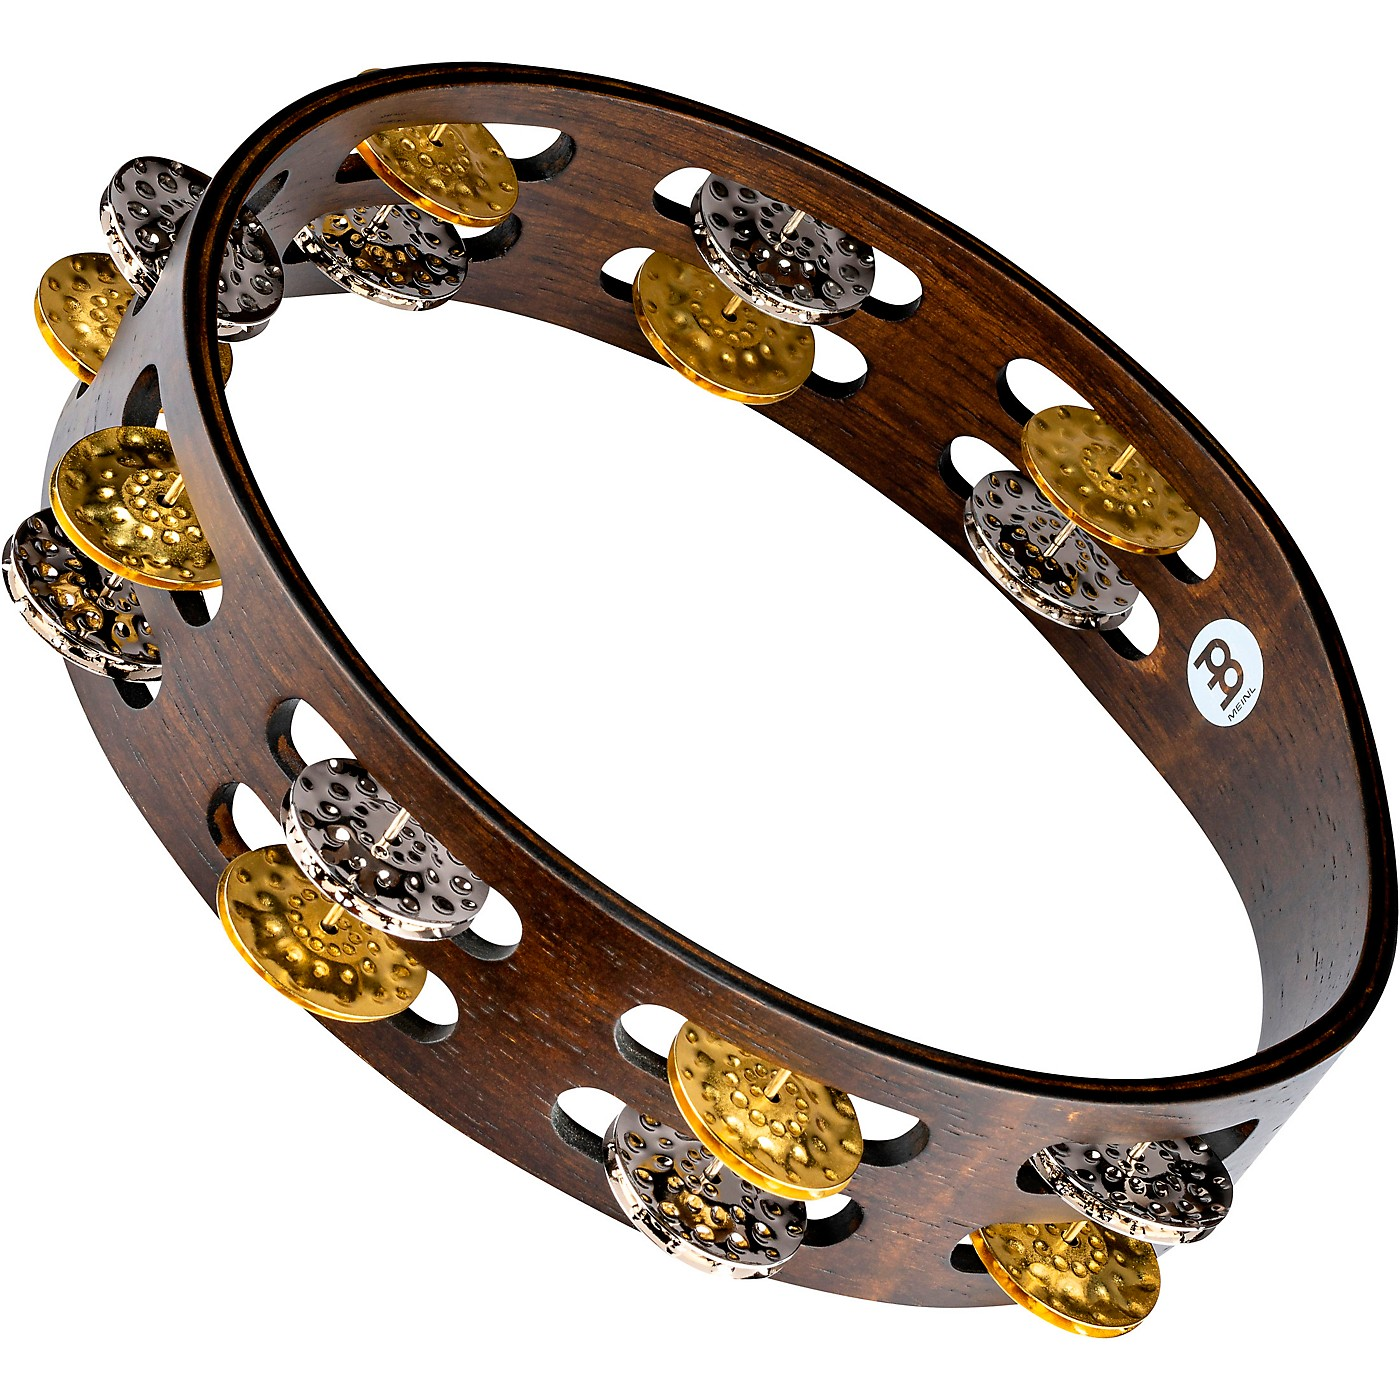 Meinl Vintage Wood Tambourine with Dual Alloy Jingles thumbnail